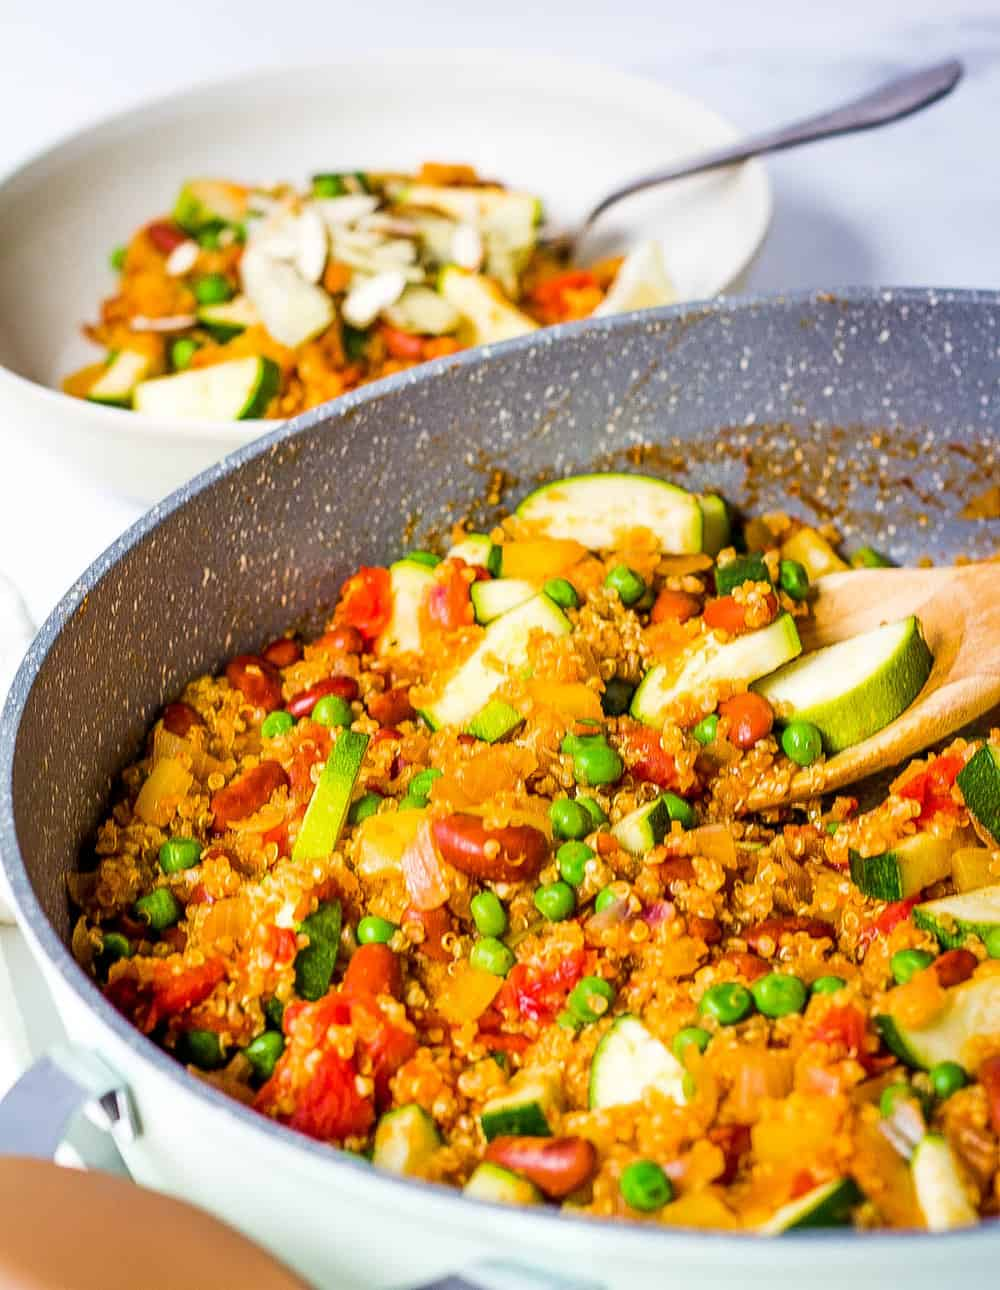 finished vegetarian paella made with fresh vegetables and quinoa